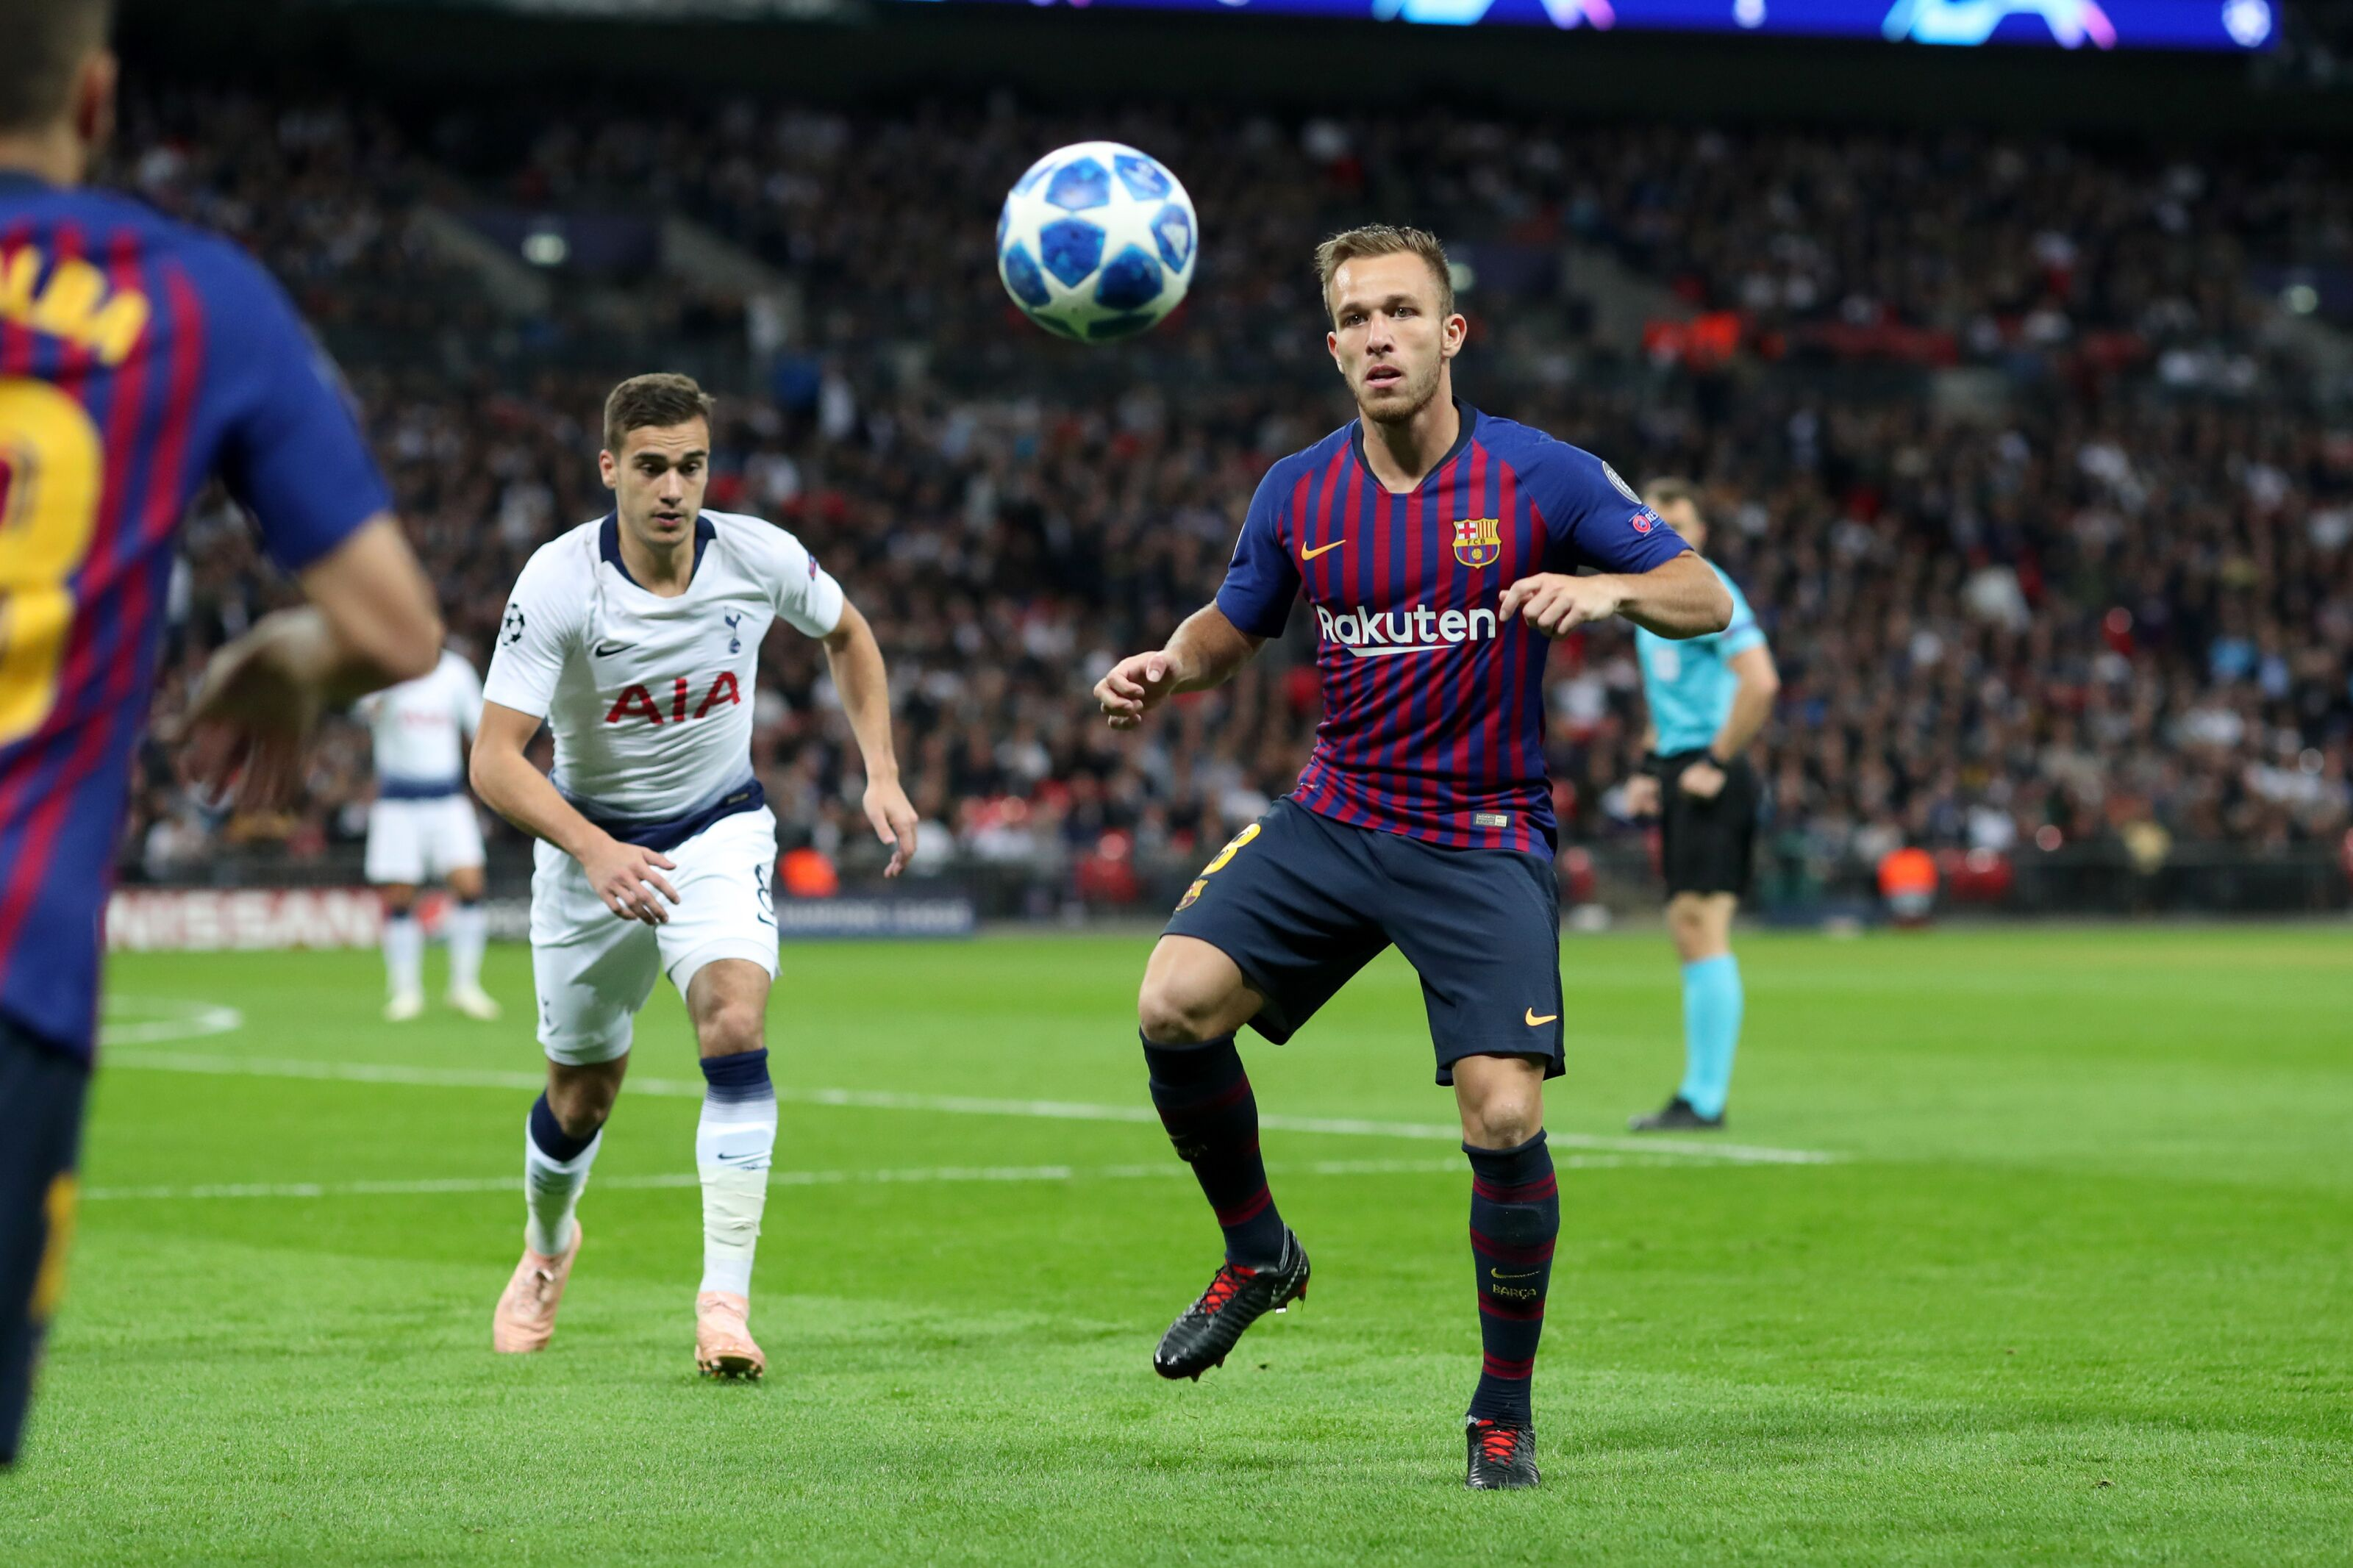 Cruzeiro 1 Boca Juniors 1 (1-3 agg)  Visitors through to Libertadores SFs ·  Goal - Sacha Pisani · Barcelona  Arthur comes into his own against Tottenham c8b25874f654f